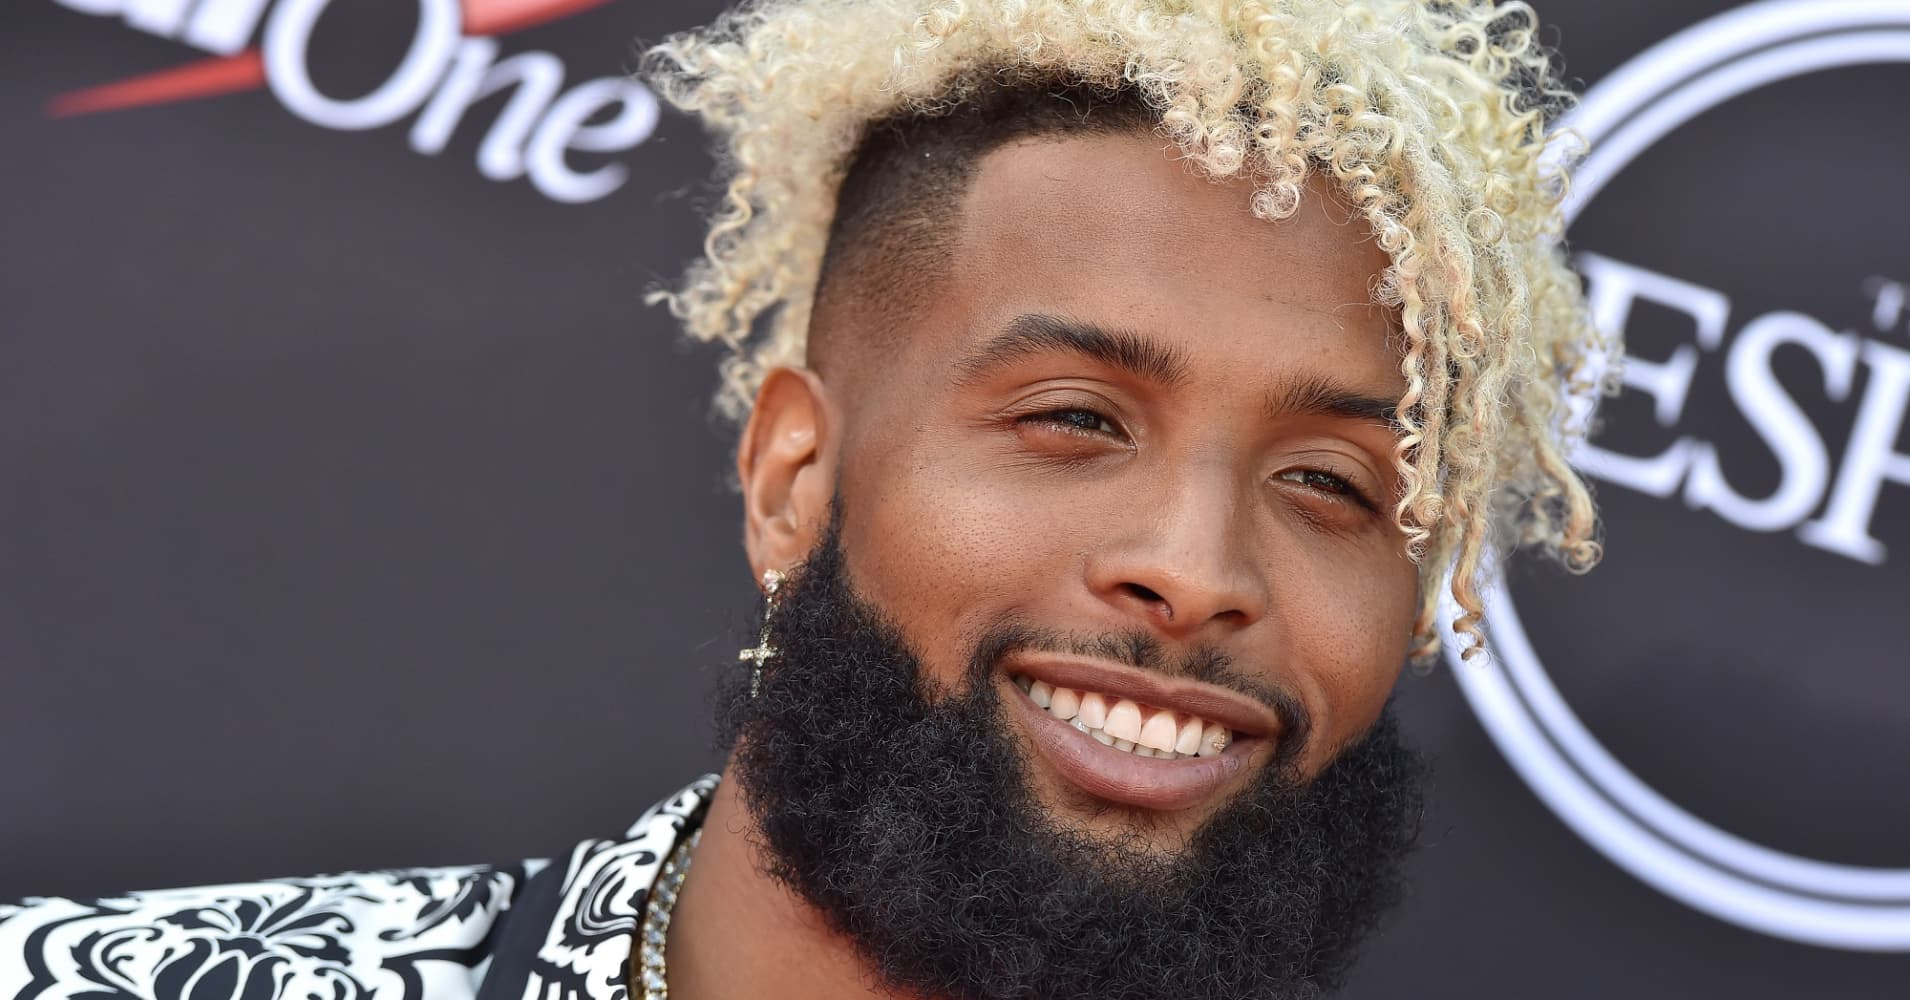 Odell Beckham Jr. attends The 2018 ESPYS at Microsoft Theater on July 18, 2018 in Los Angeles, California.